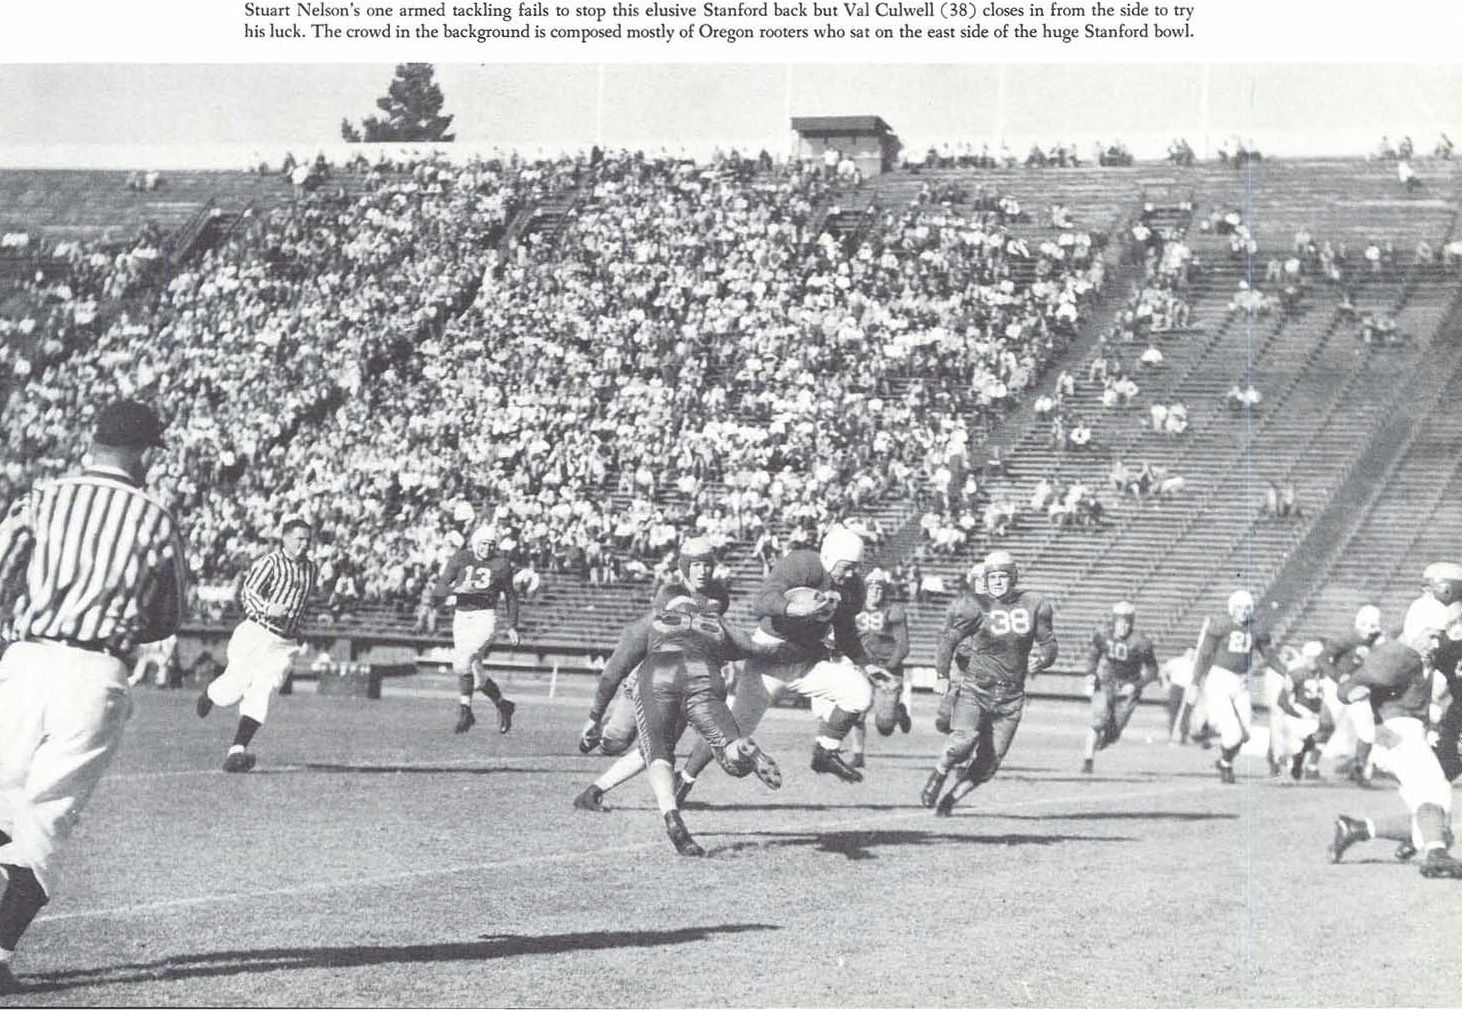 1940 Oregon - Stanford football game in Palo Alto, CA.  From the 1941 Oregana (University of Oregon yearbook).  www.CampusAttic.com